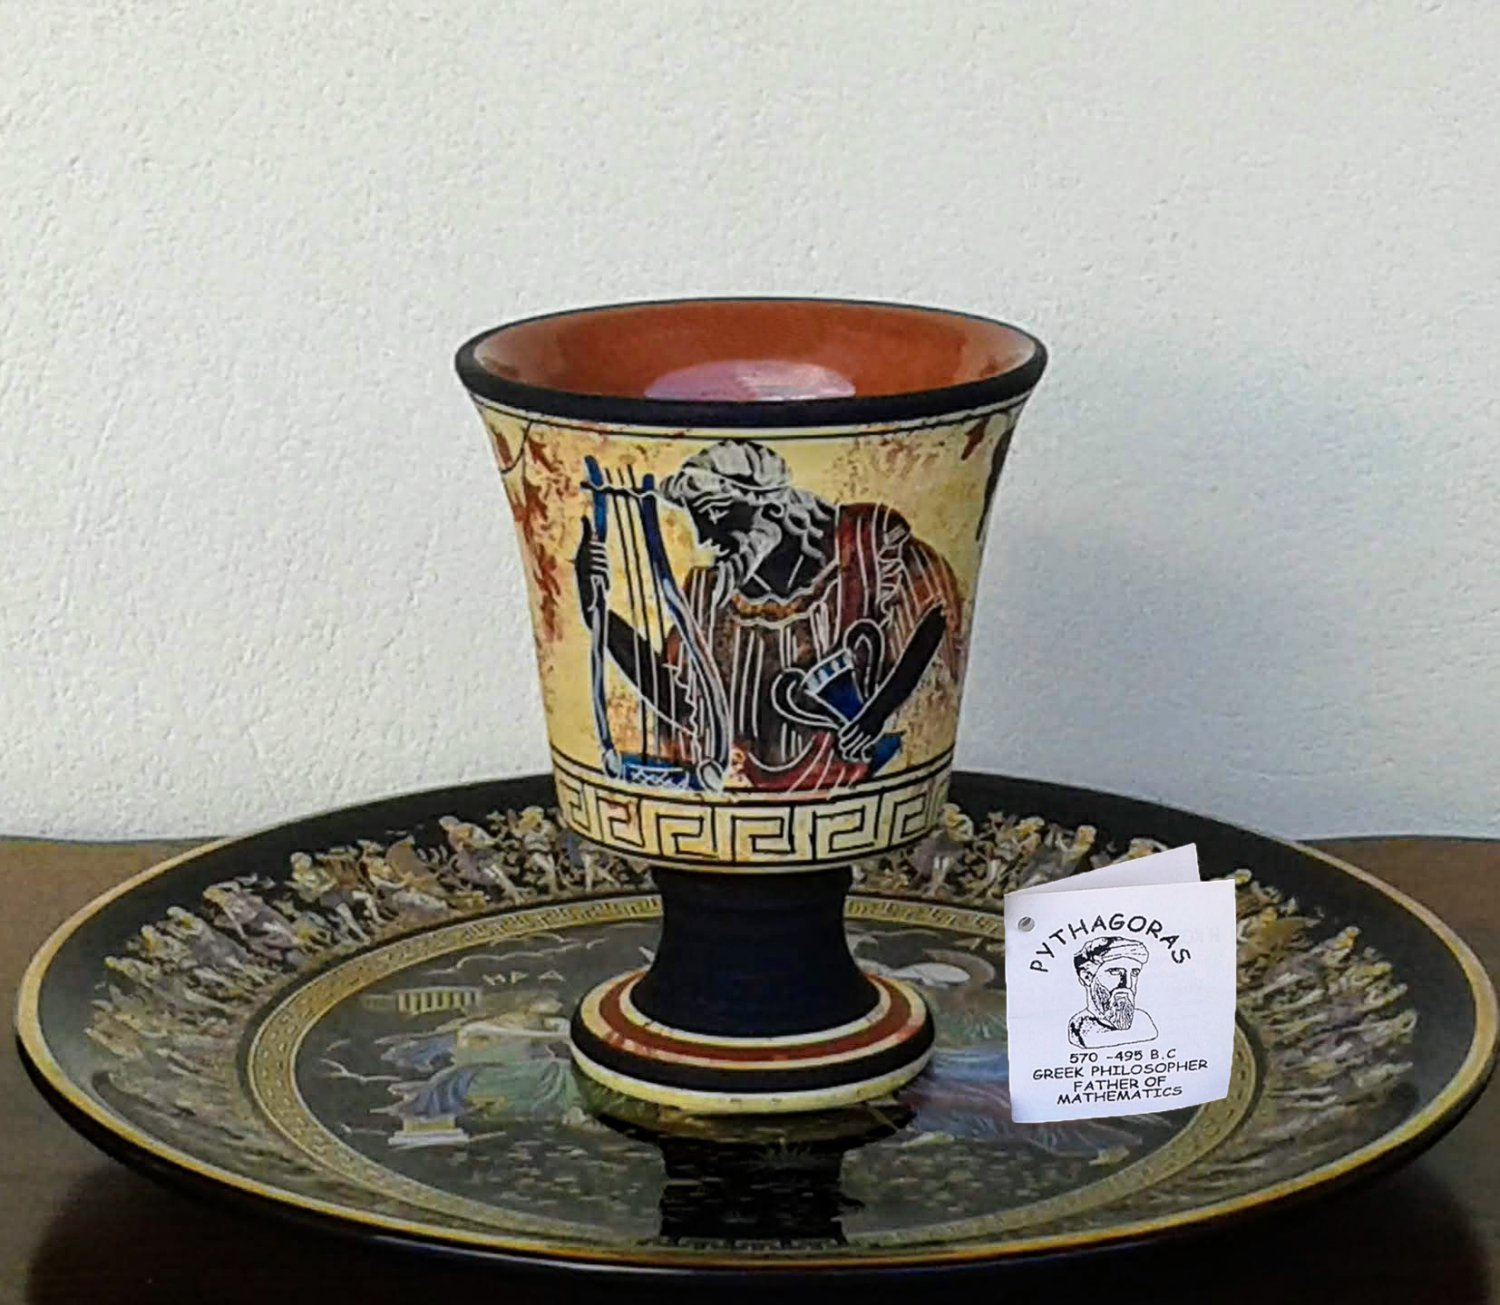 Pythagoras cup, Fair cup, Museum Copy, engraved in hand, depicts God Dionysus, stoneware, pottery